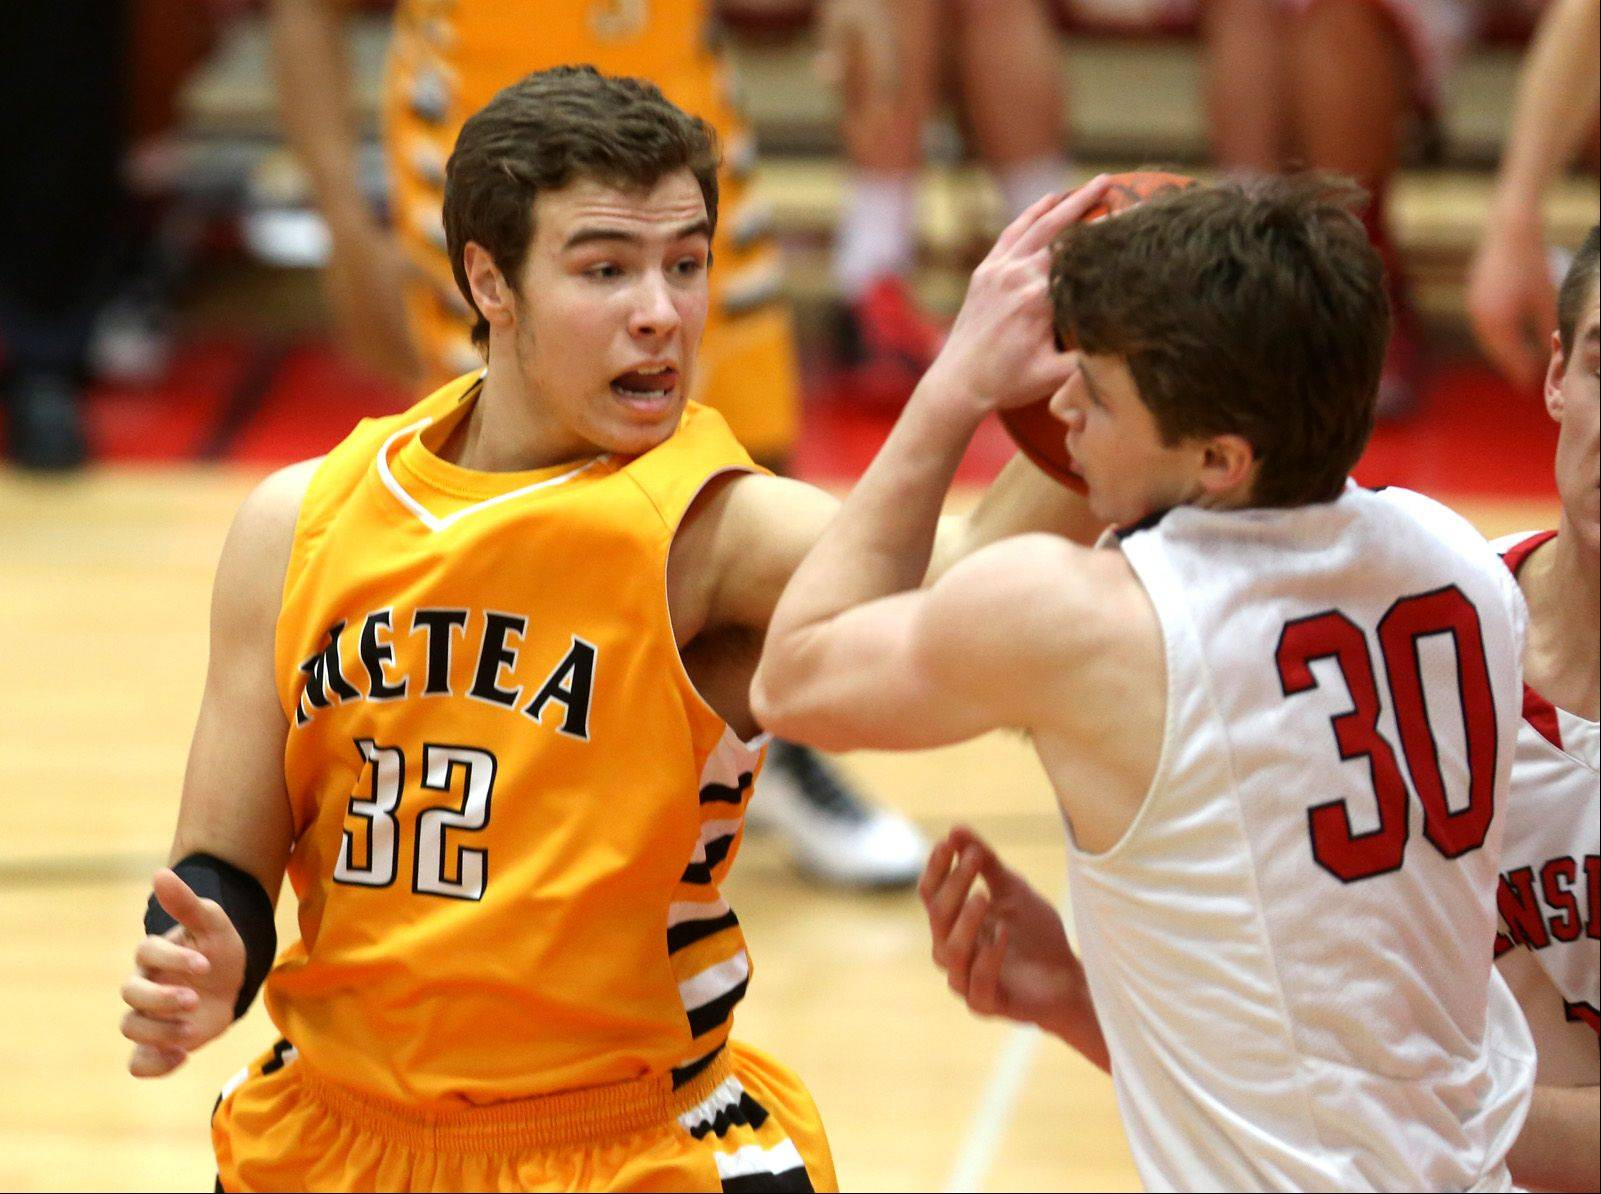 Images: Metea Valley at Hinsdale Central boys basketball